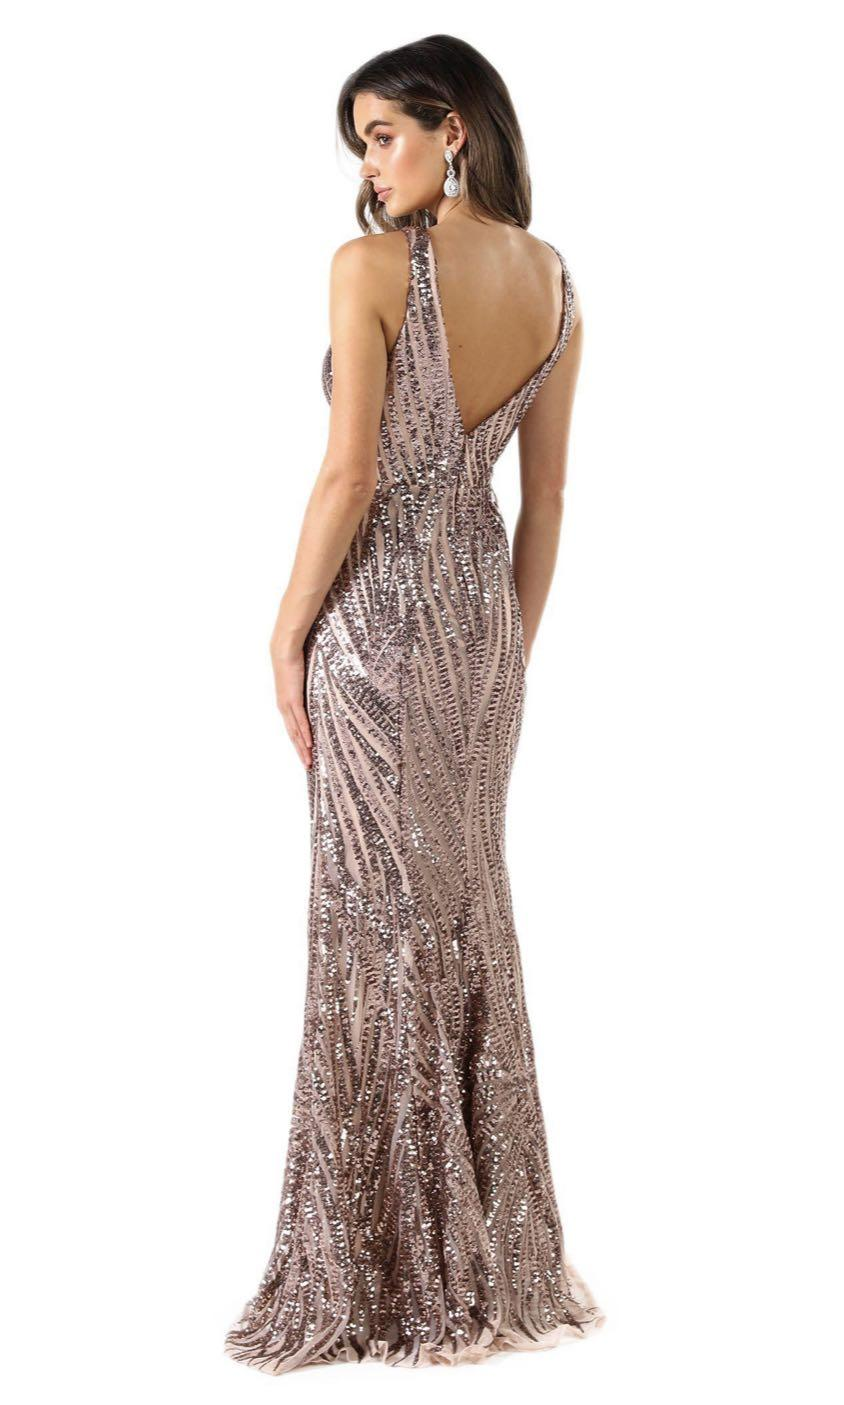 Formal Dress Noodz Boutique Sapphira Sequin Gown - Rose Gold